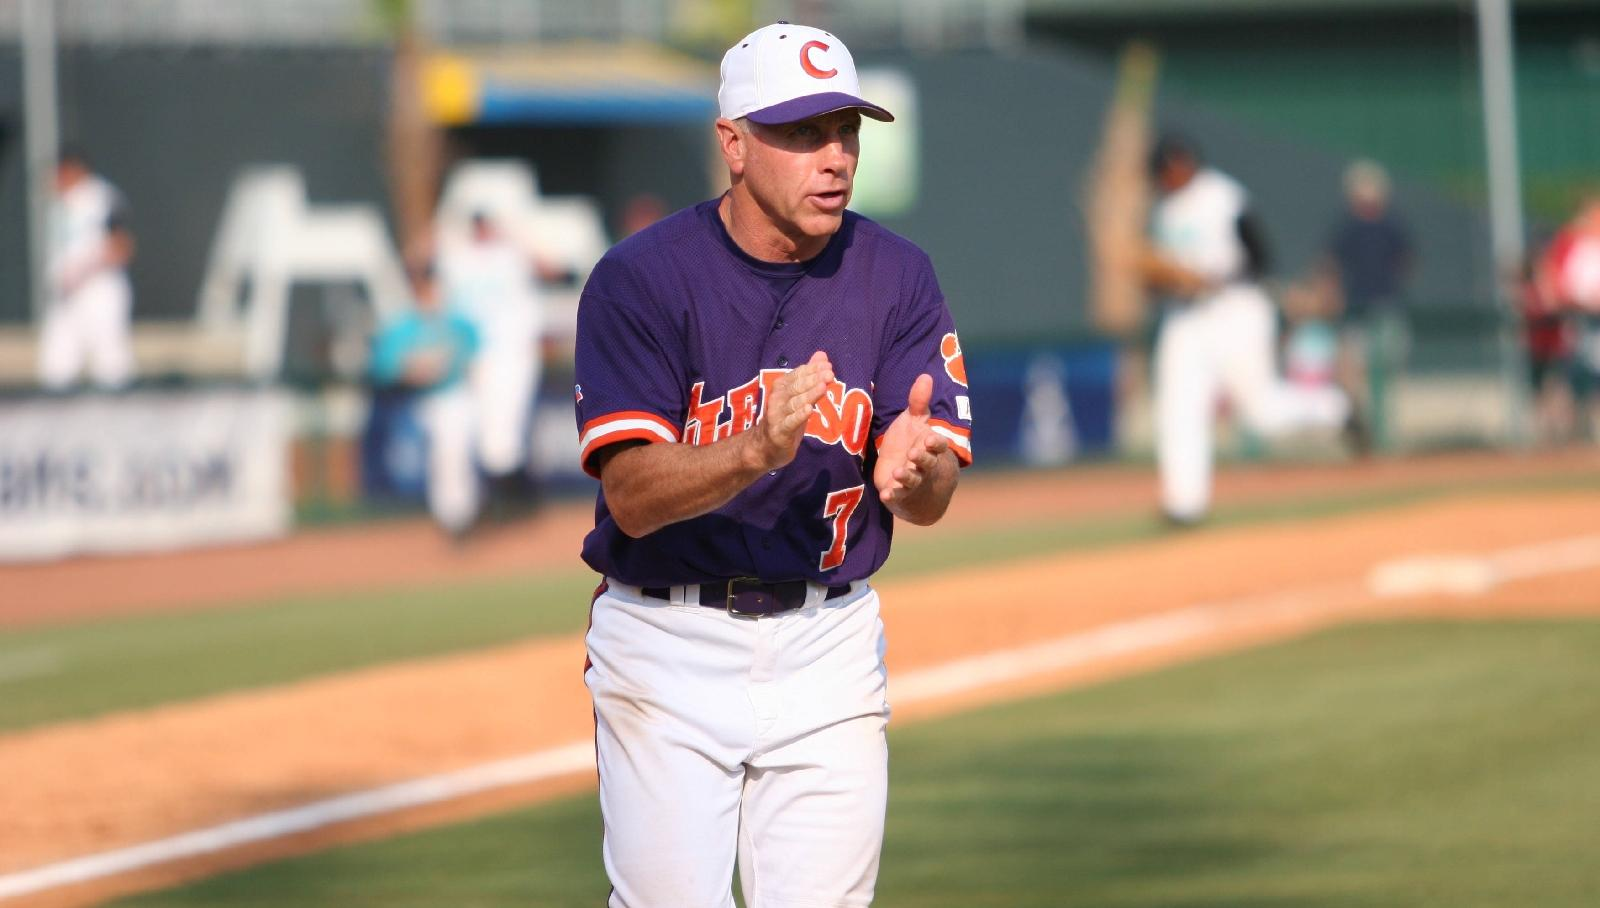 #13 Tigers Host Jack Leggett's Alma Mater, Maine, This Weekend